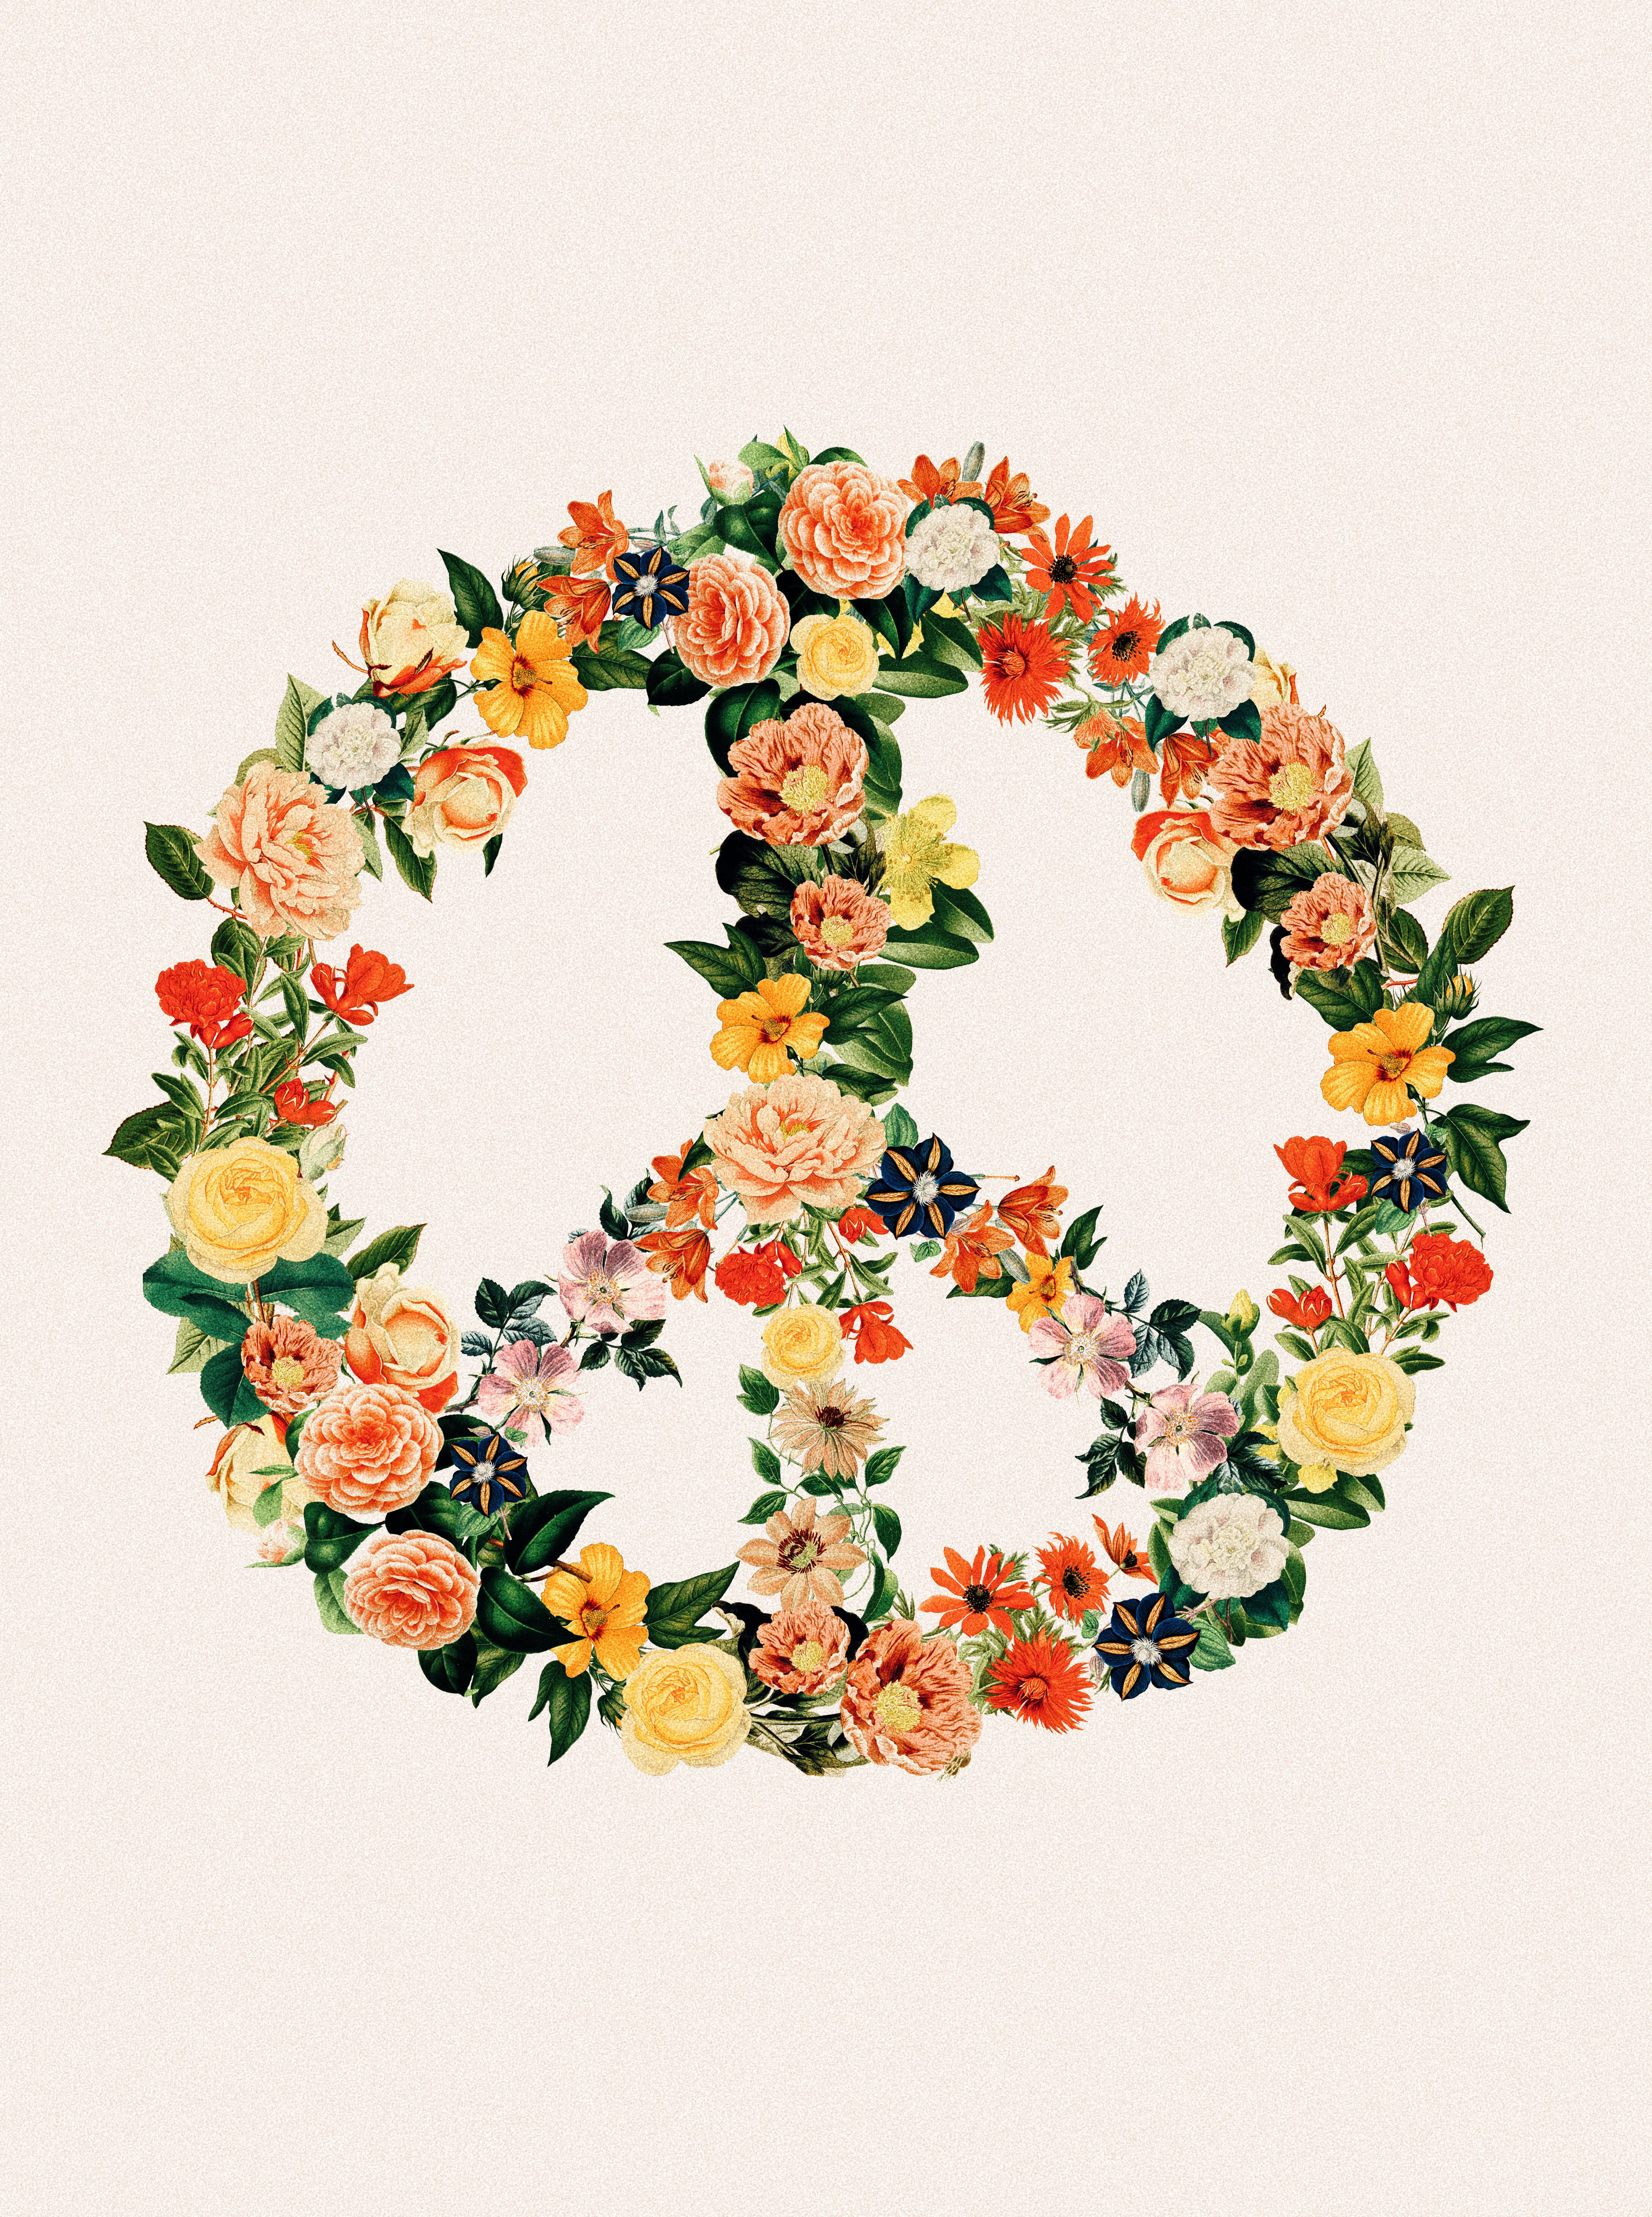 Vintage Floral Peace Sign Tapestry Tapestry Roomdecor Vintage Flowers Hippie Art Peace Sign Peace Sign Tattoos